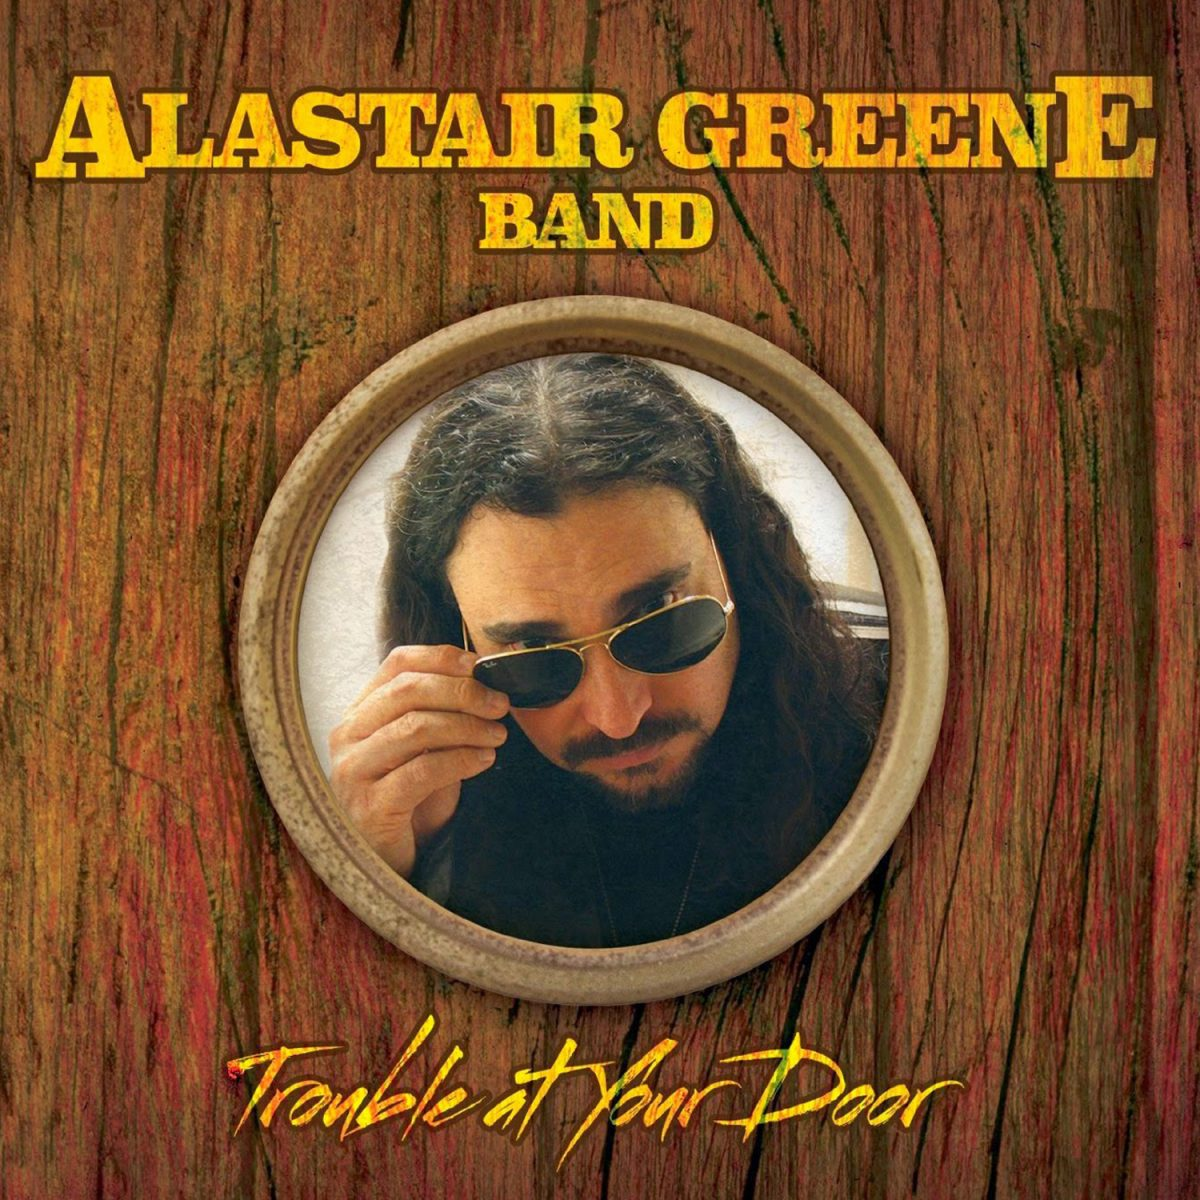 Greene, Alastair Band: Trouble At Your Door (2014)